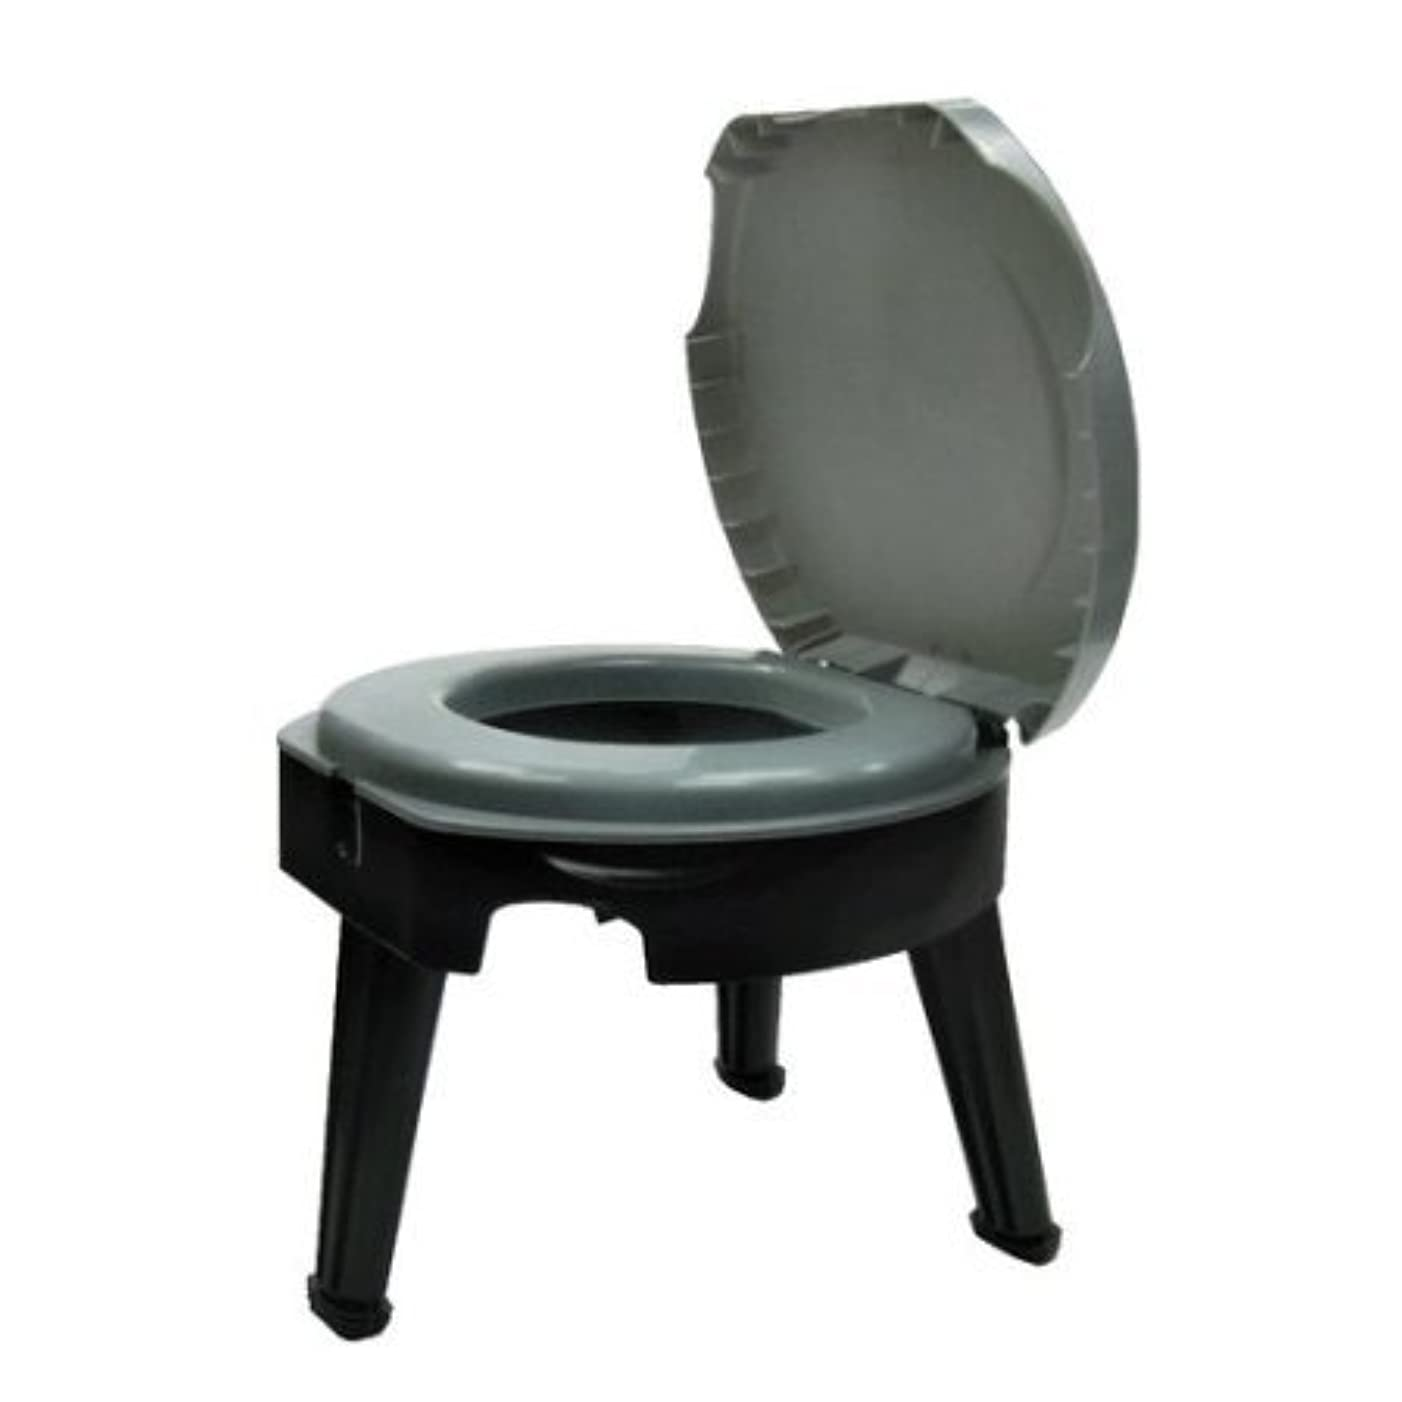 粗いスケッチ行列Folding Portable Camping Toilet with Plastic Construction by Ozark Trail